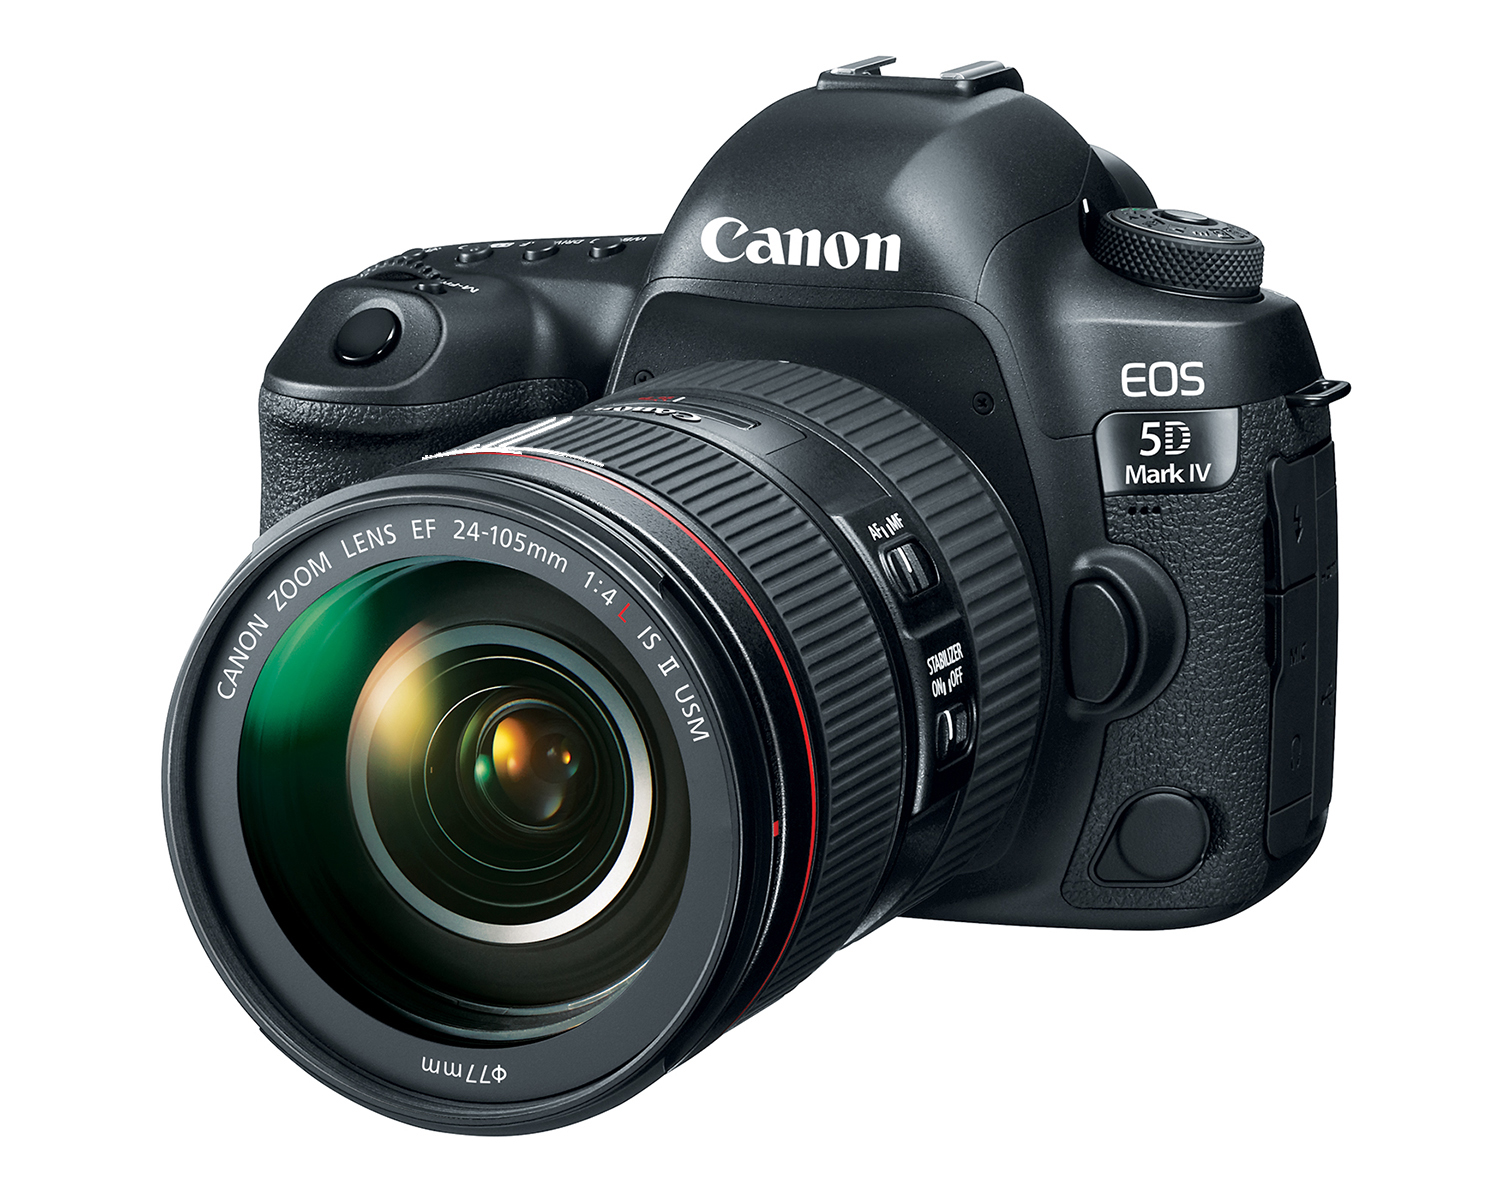 Canon EOS 5D Mark IV press